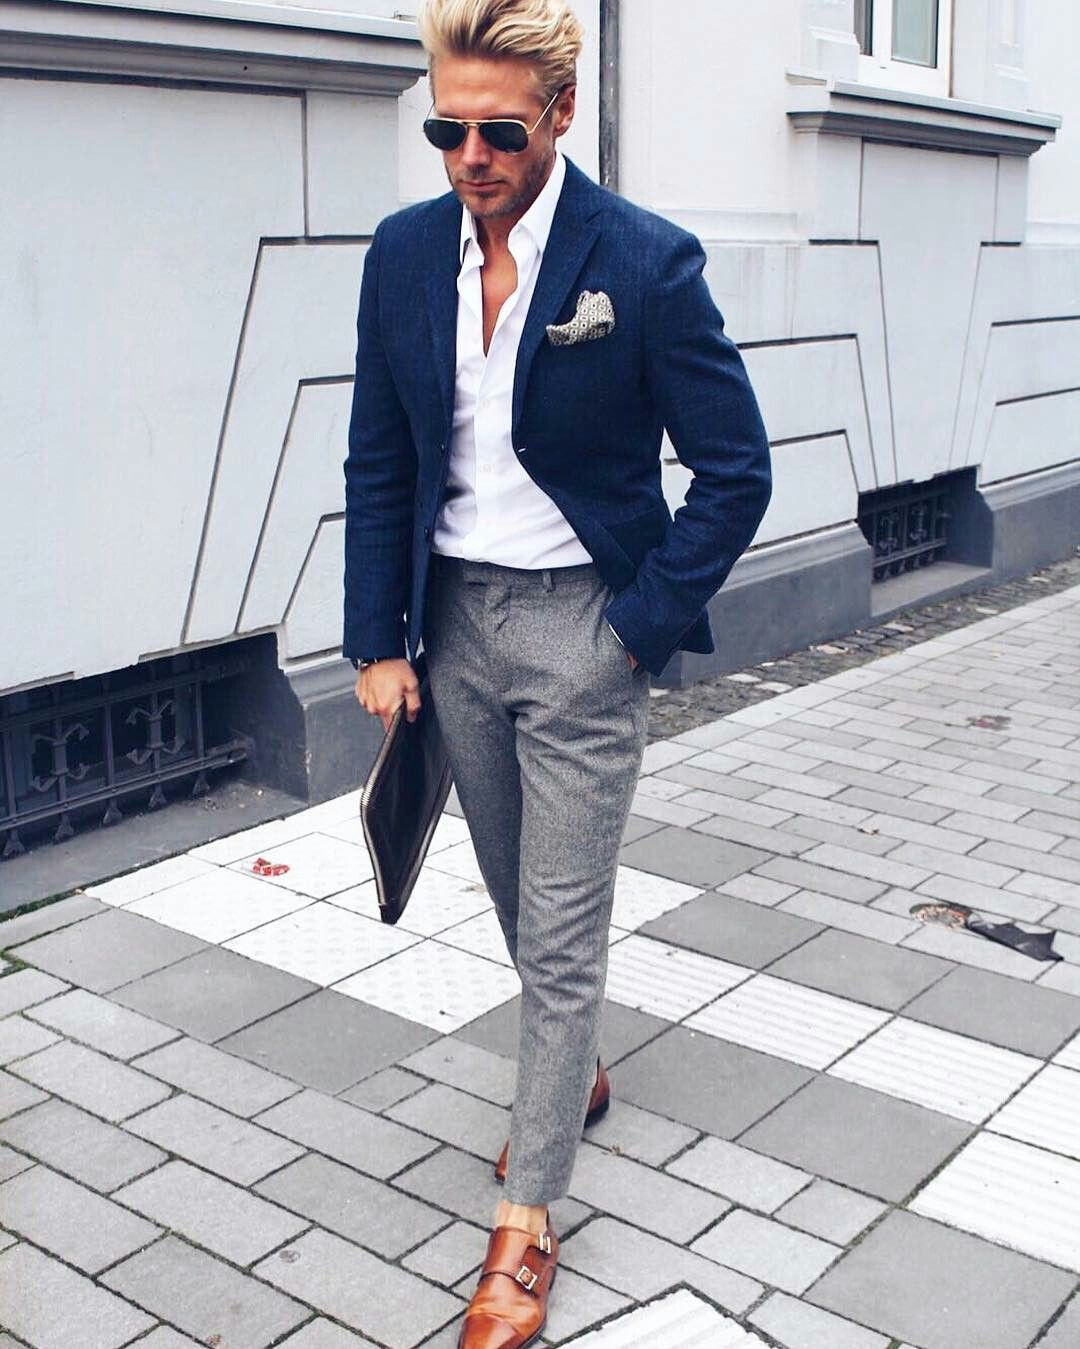 Keymanstyle Mens Style Pinterest Mens Fashion Fashion And